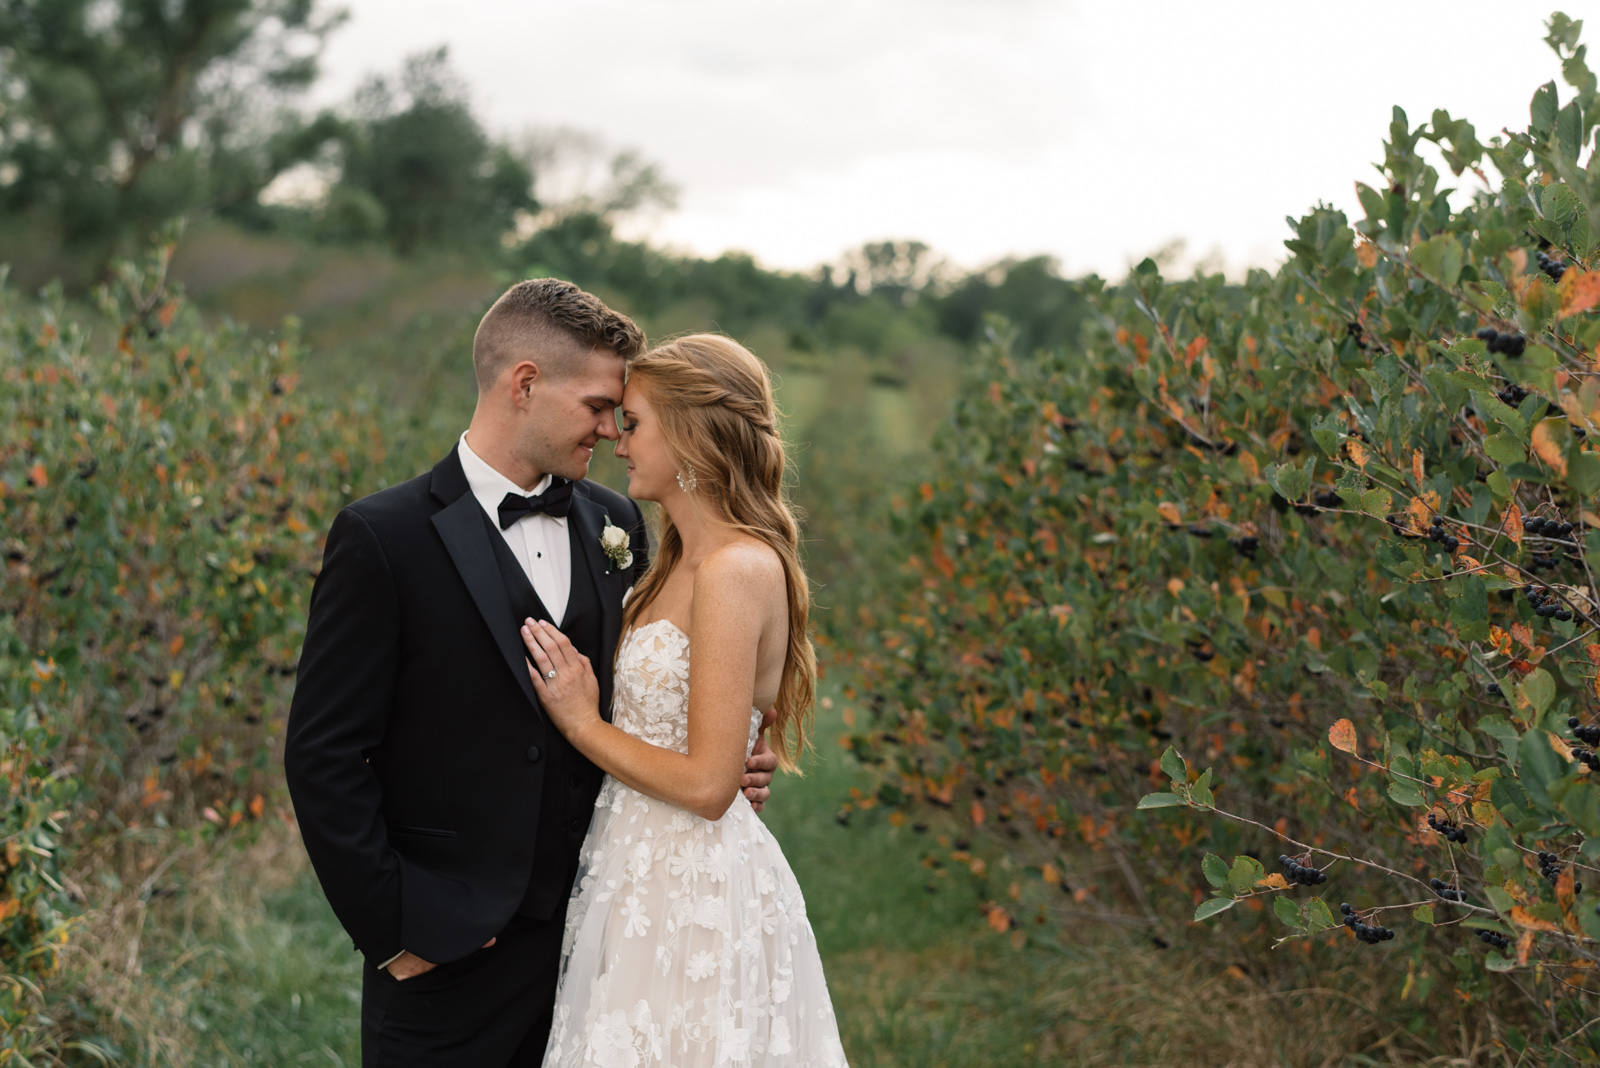 bride and groom vineyards koru berry farm wedding venue